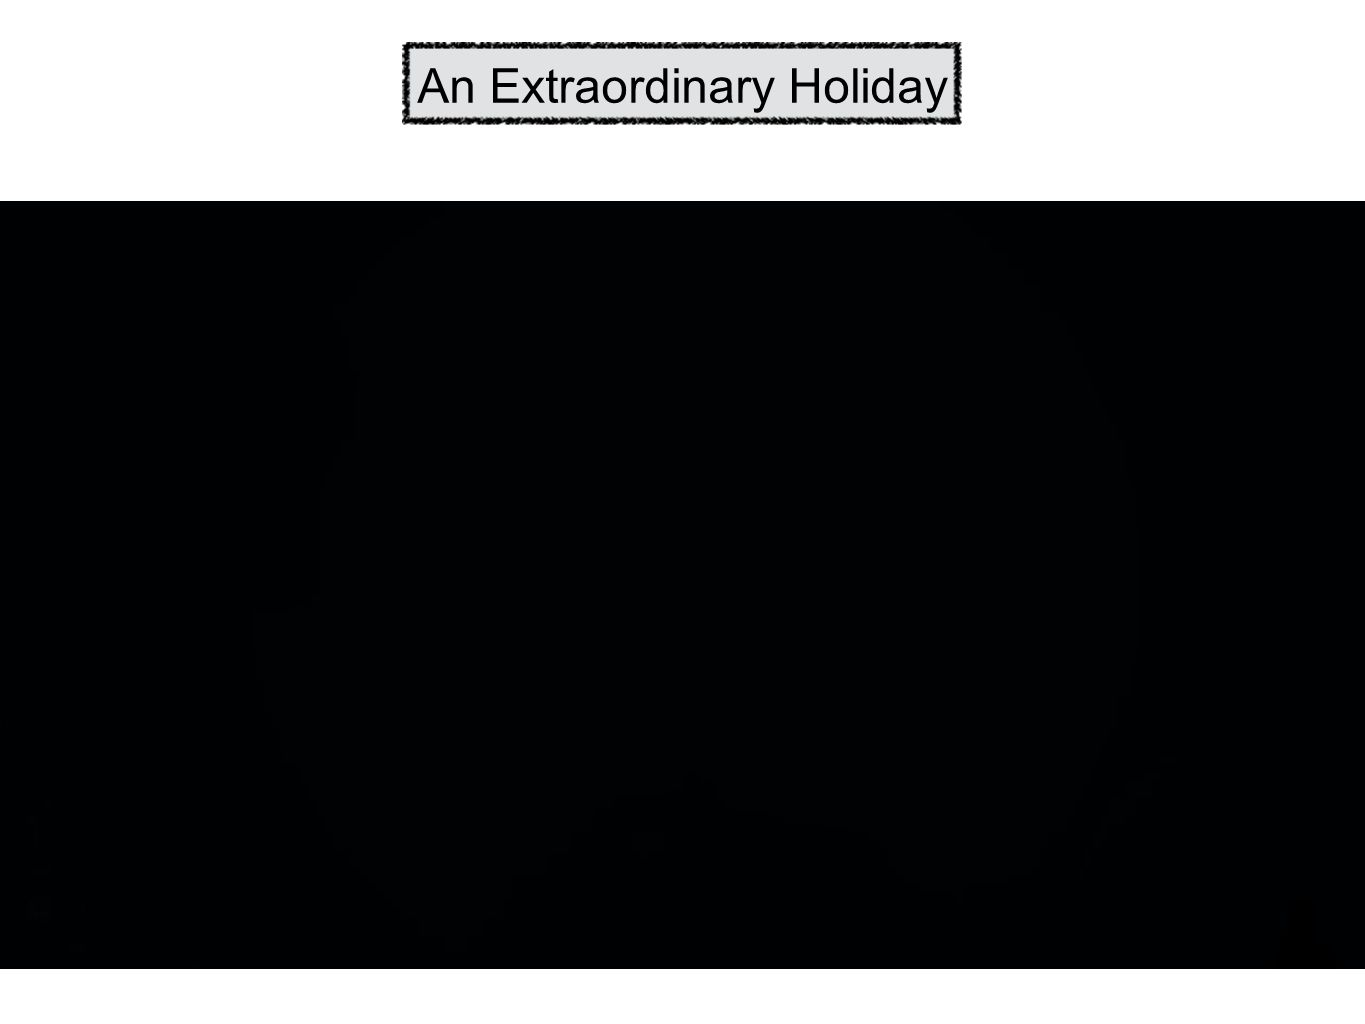 An Extraordinary Holiday